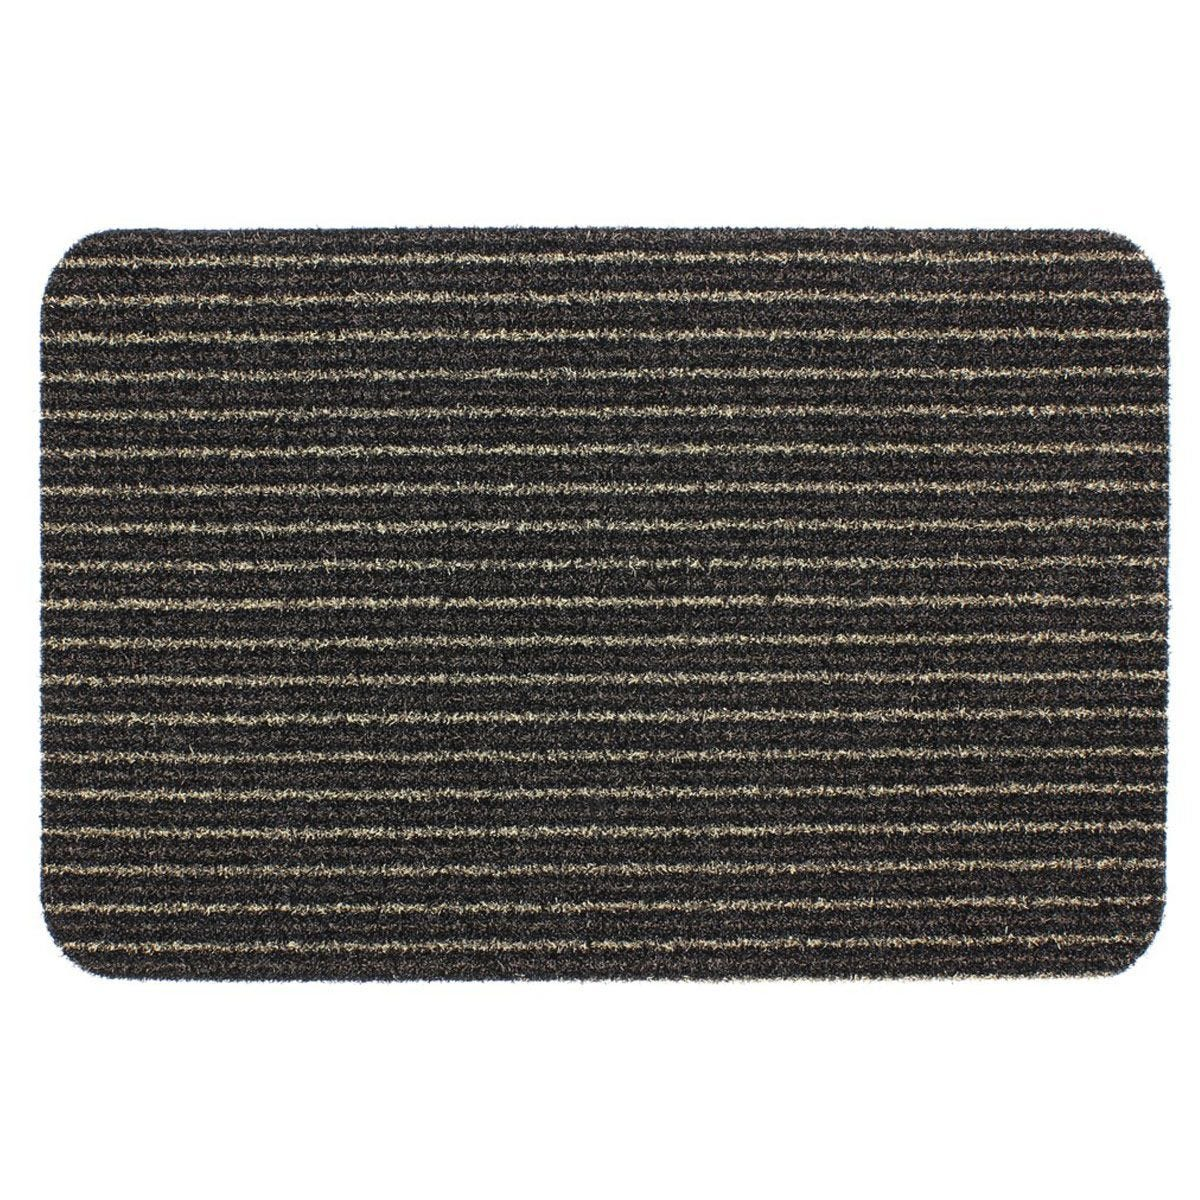 JVL Infinity 50 x 75cm Heavy Duty Scraper Entrance Door Mat - Brown